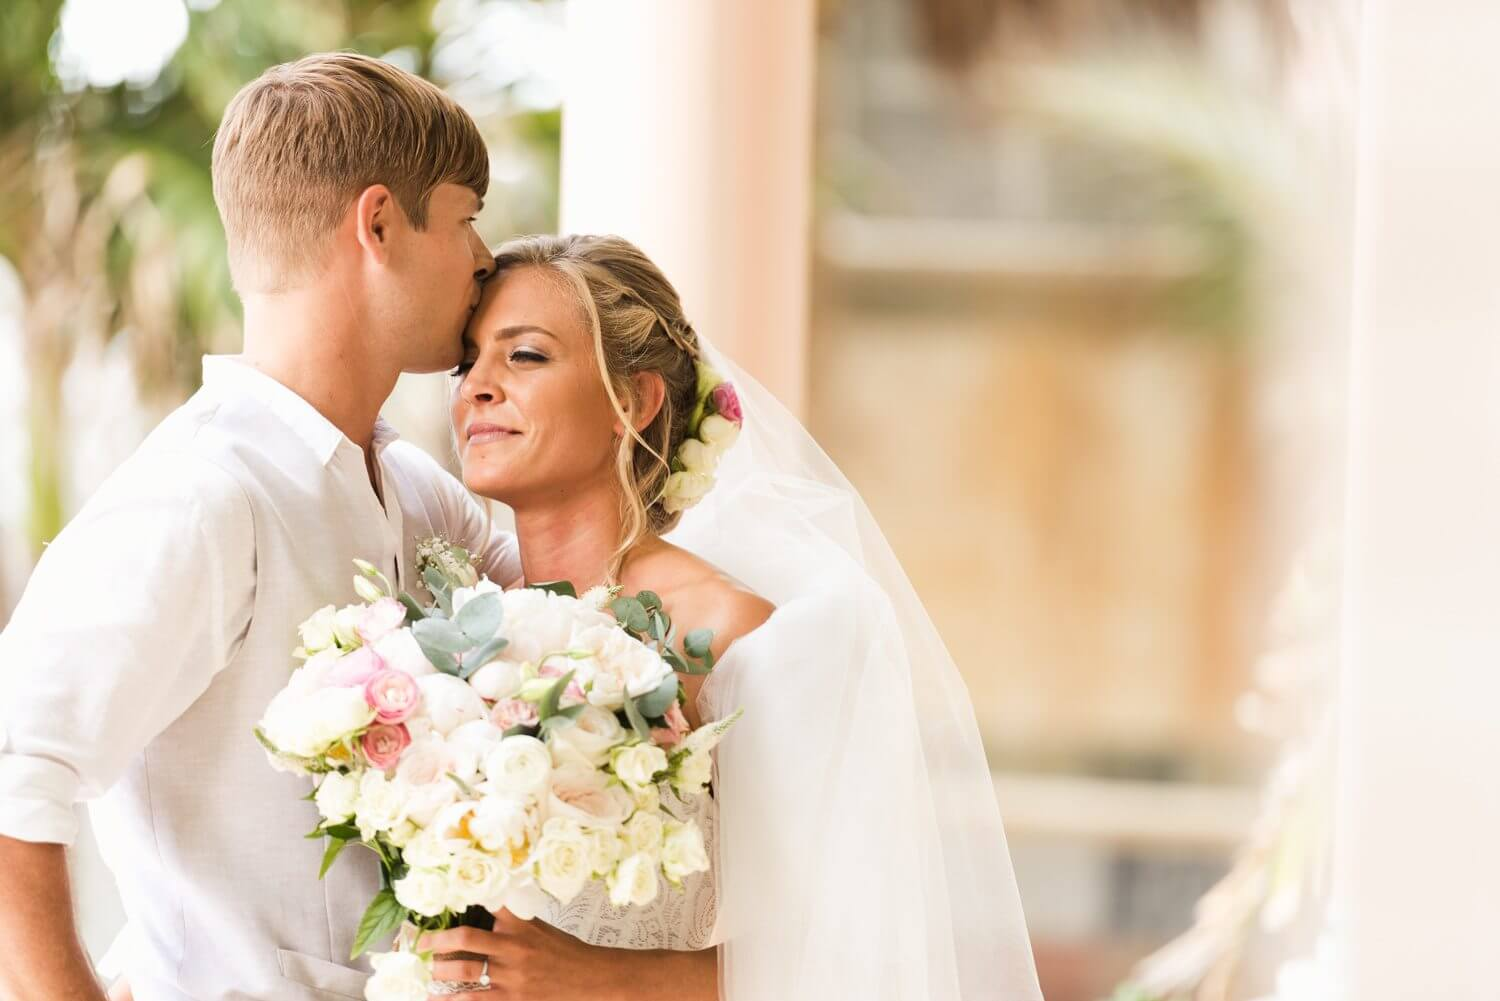 Freas Photography Southernmost House Wedding 53 - Boho Styled Key West Wedding at the Southernmost House in Key West, Florida